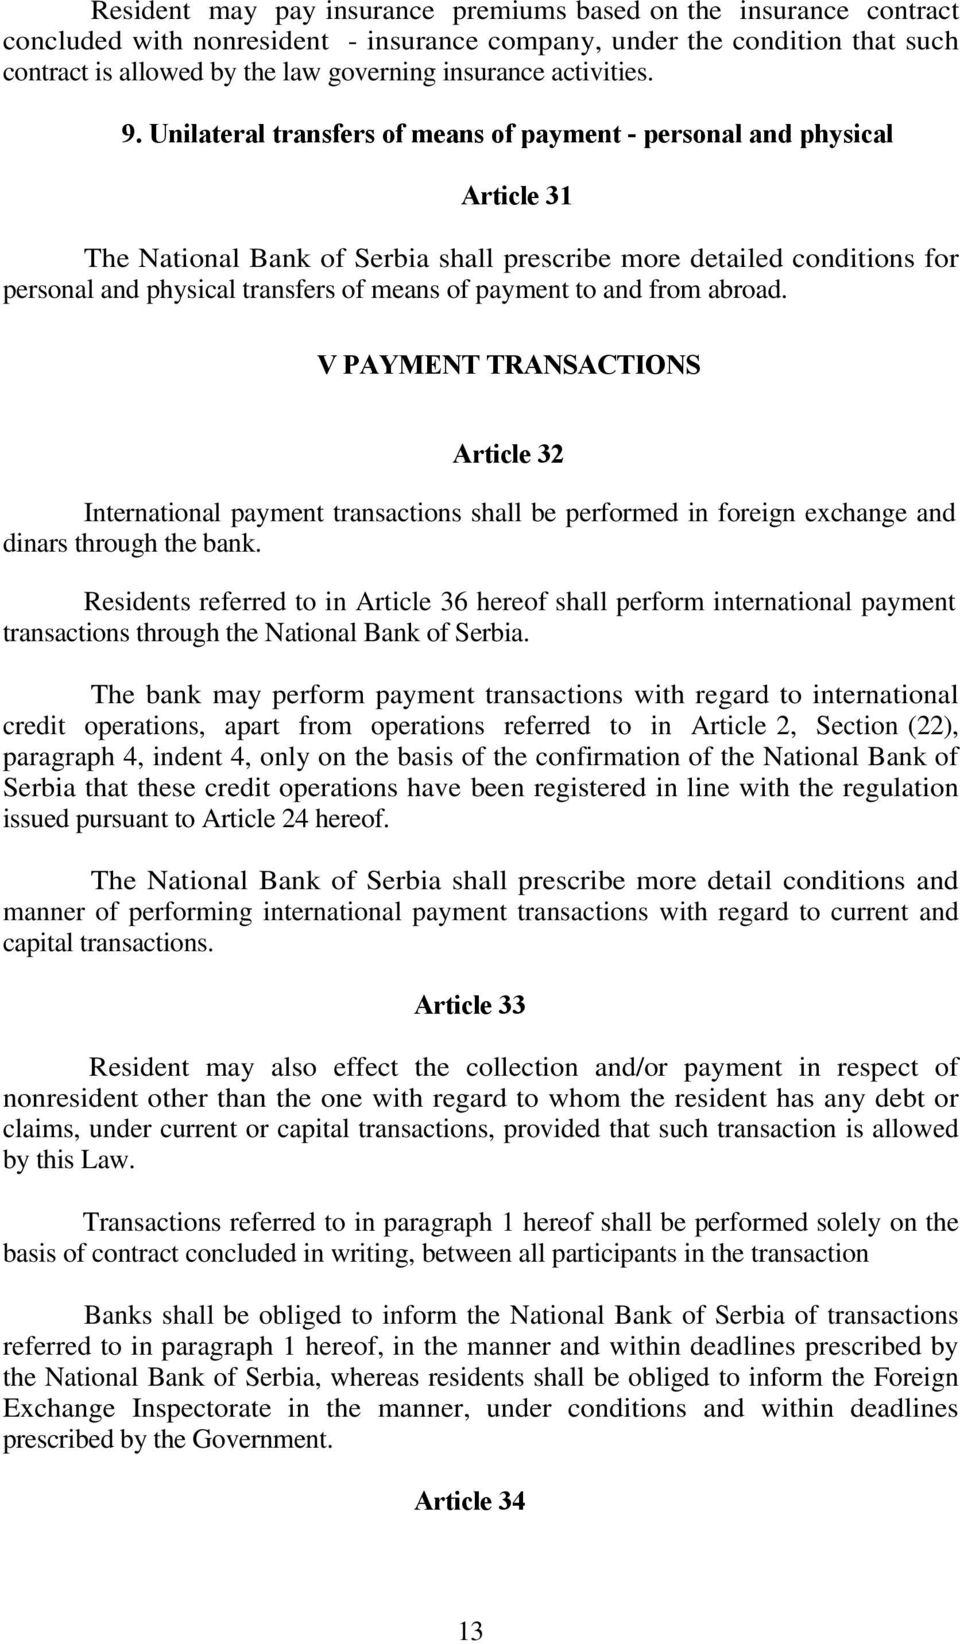 Unilateral transfers of means of payment - personal and physical Article 31 The National Bank of Serbia shall prescribe more detailed conditions for personal and physical transfers of means of